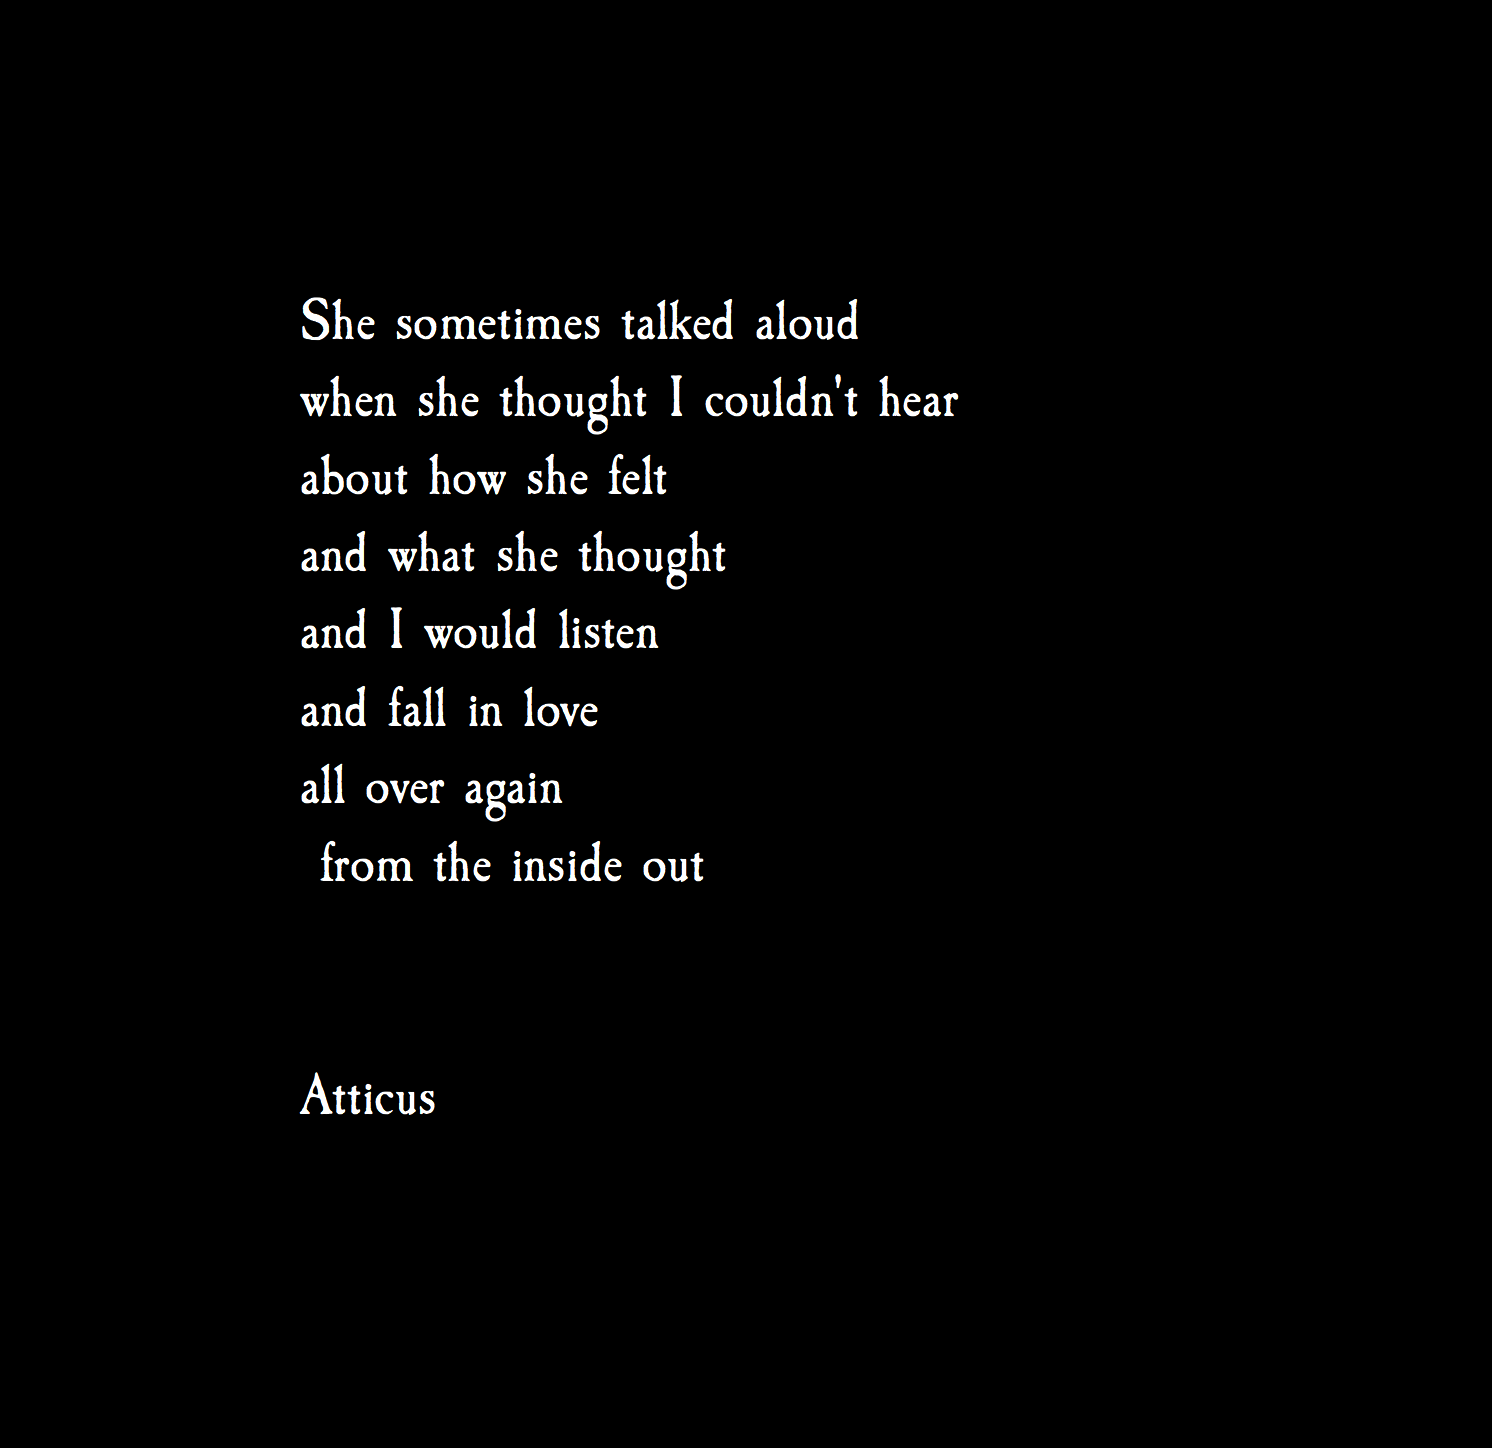 Inside Out Atticuspoetry Atticus Poem Love Forever She Poetry Atticus Quotes Atticus Poems Emotional Quotes